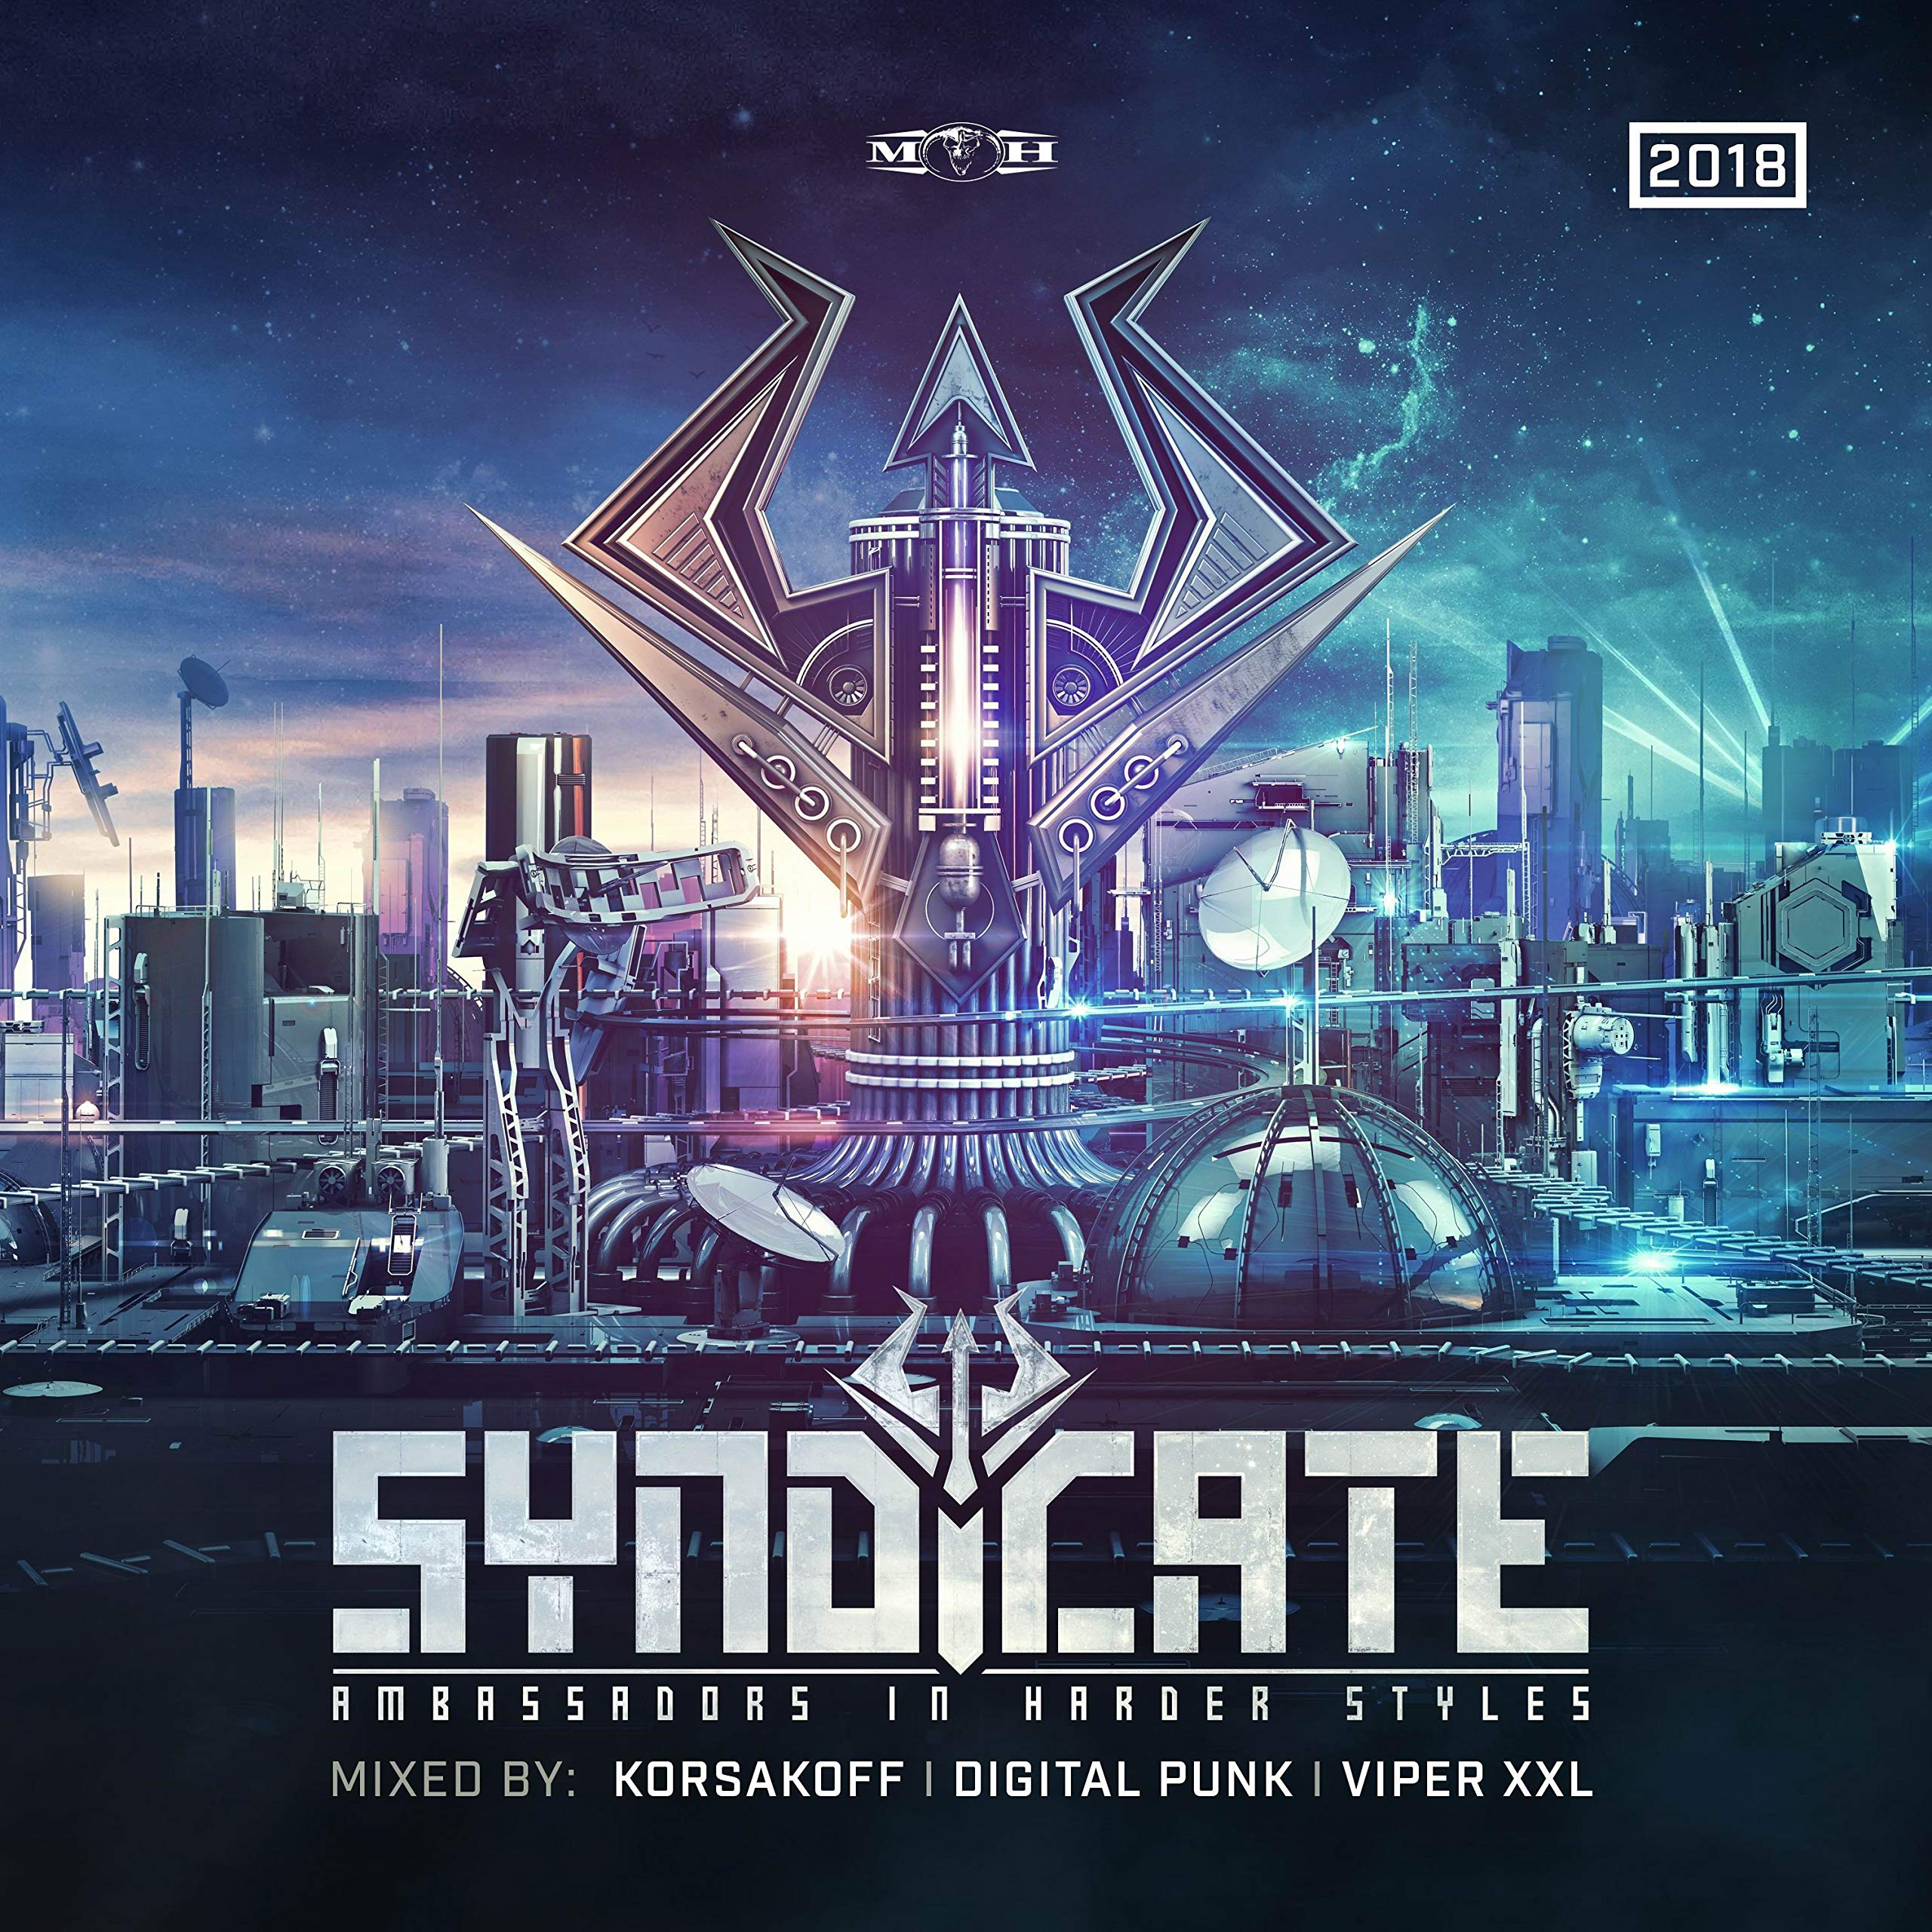 VA - Syndicate Ambassadors In Harder Styles 2018 (2018) [FLAC] Download